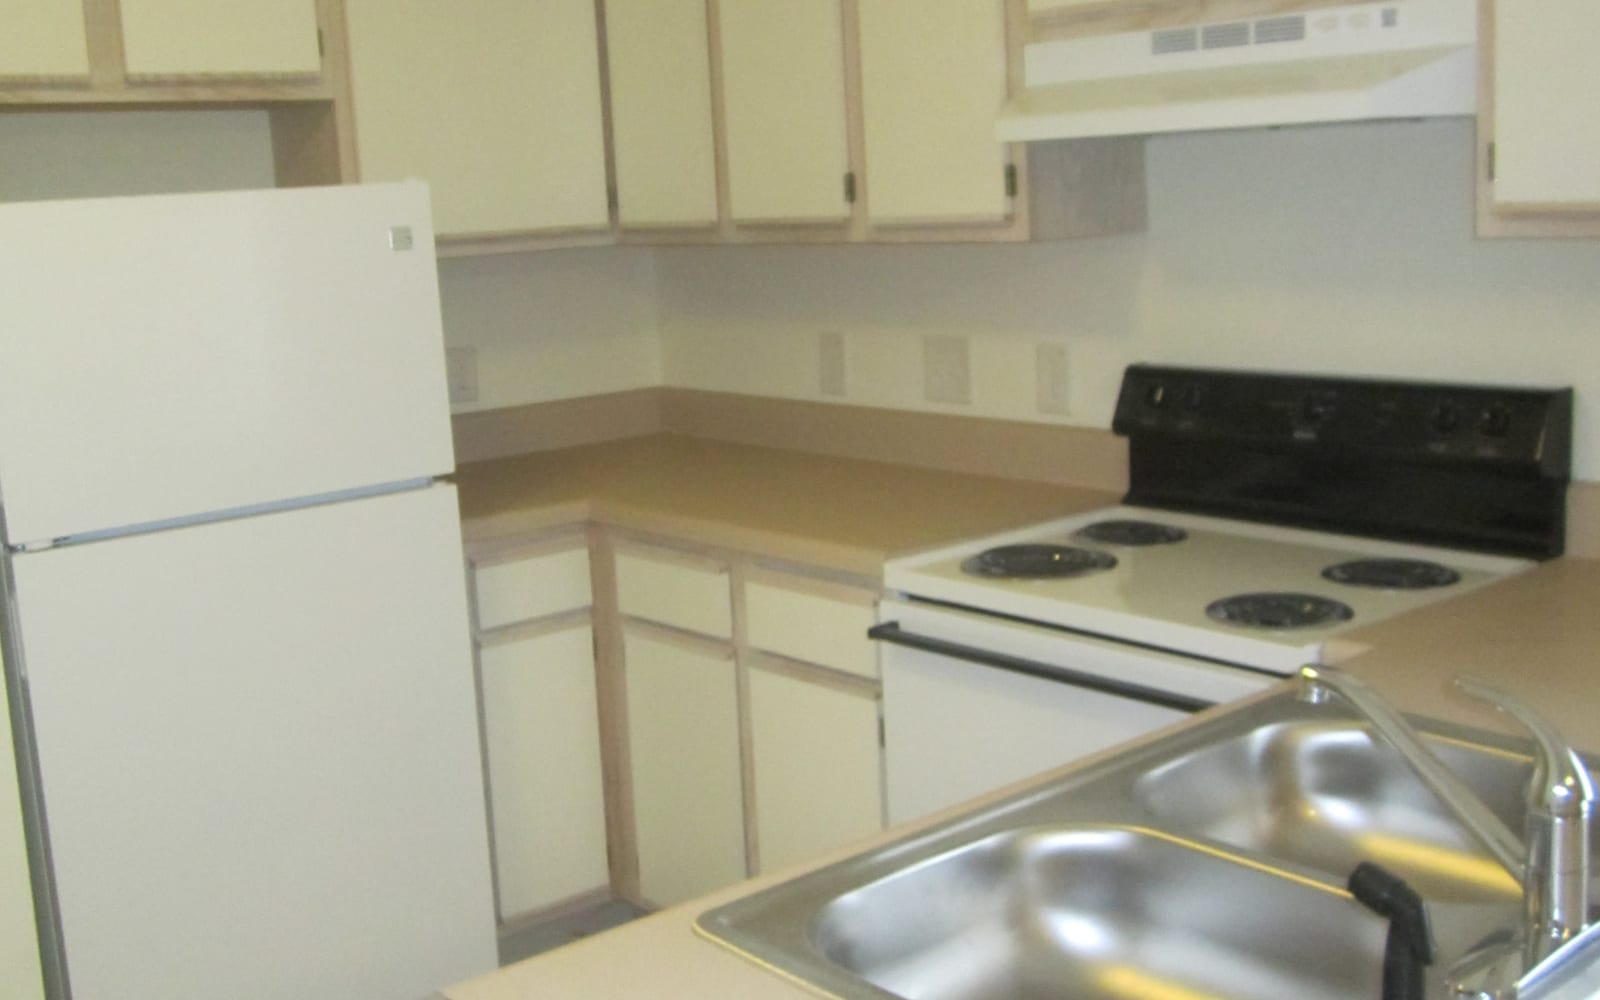 Clean kitchen at Wedgefield Apartments in Raeford, North Carolina